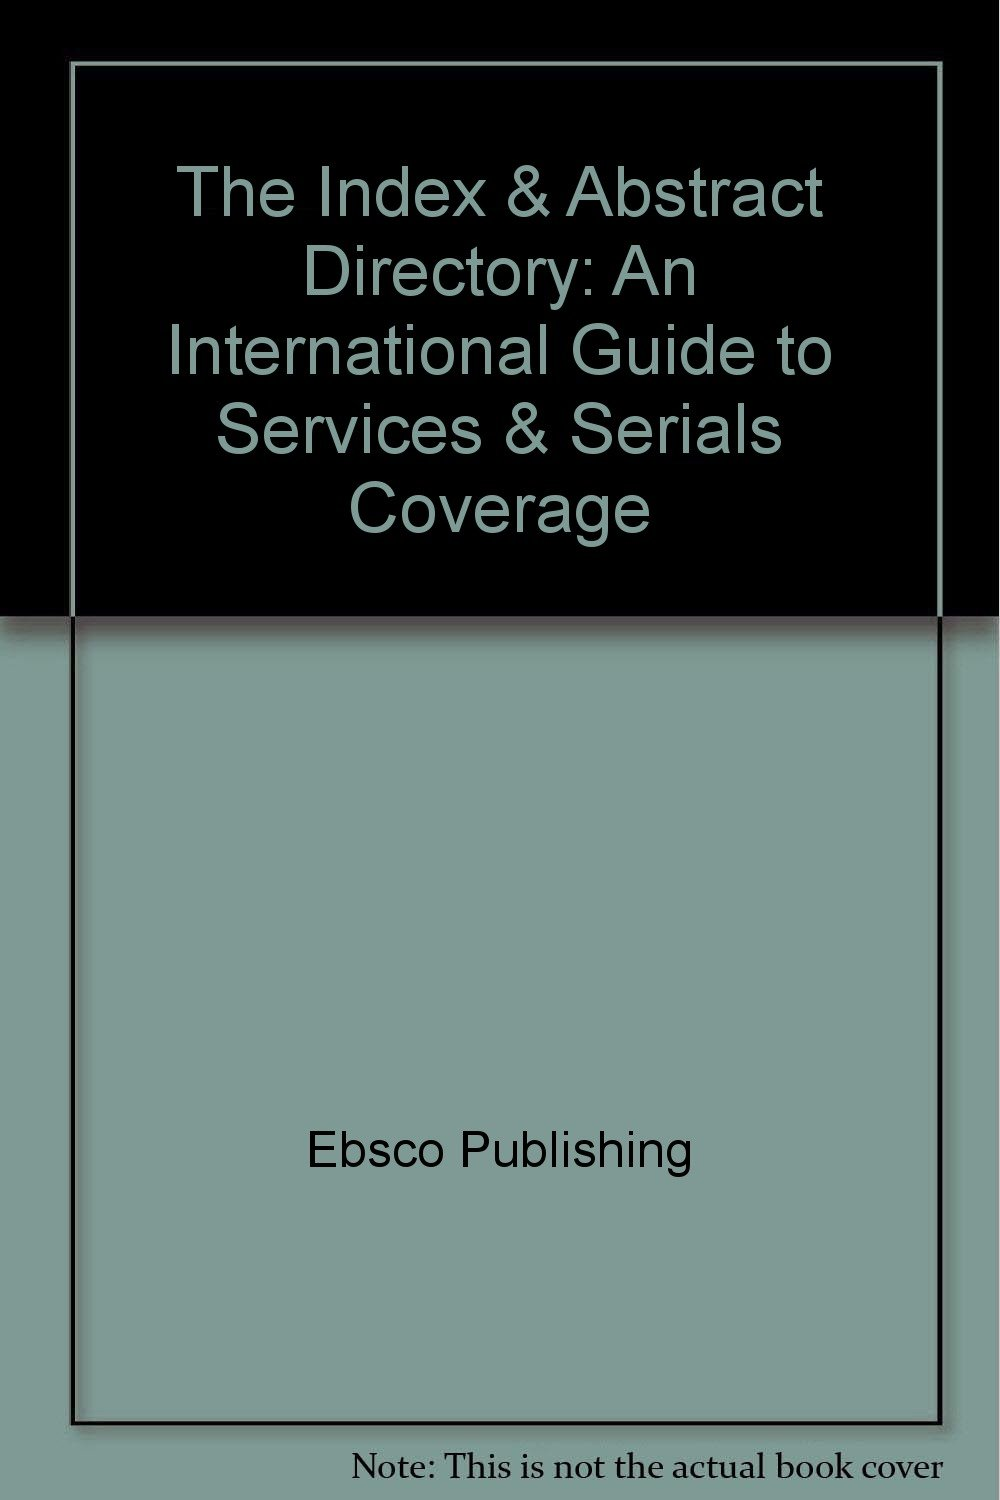 The Index & Abstract Directory: An International Guide to Services